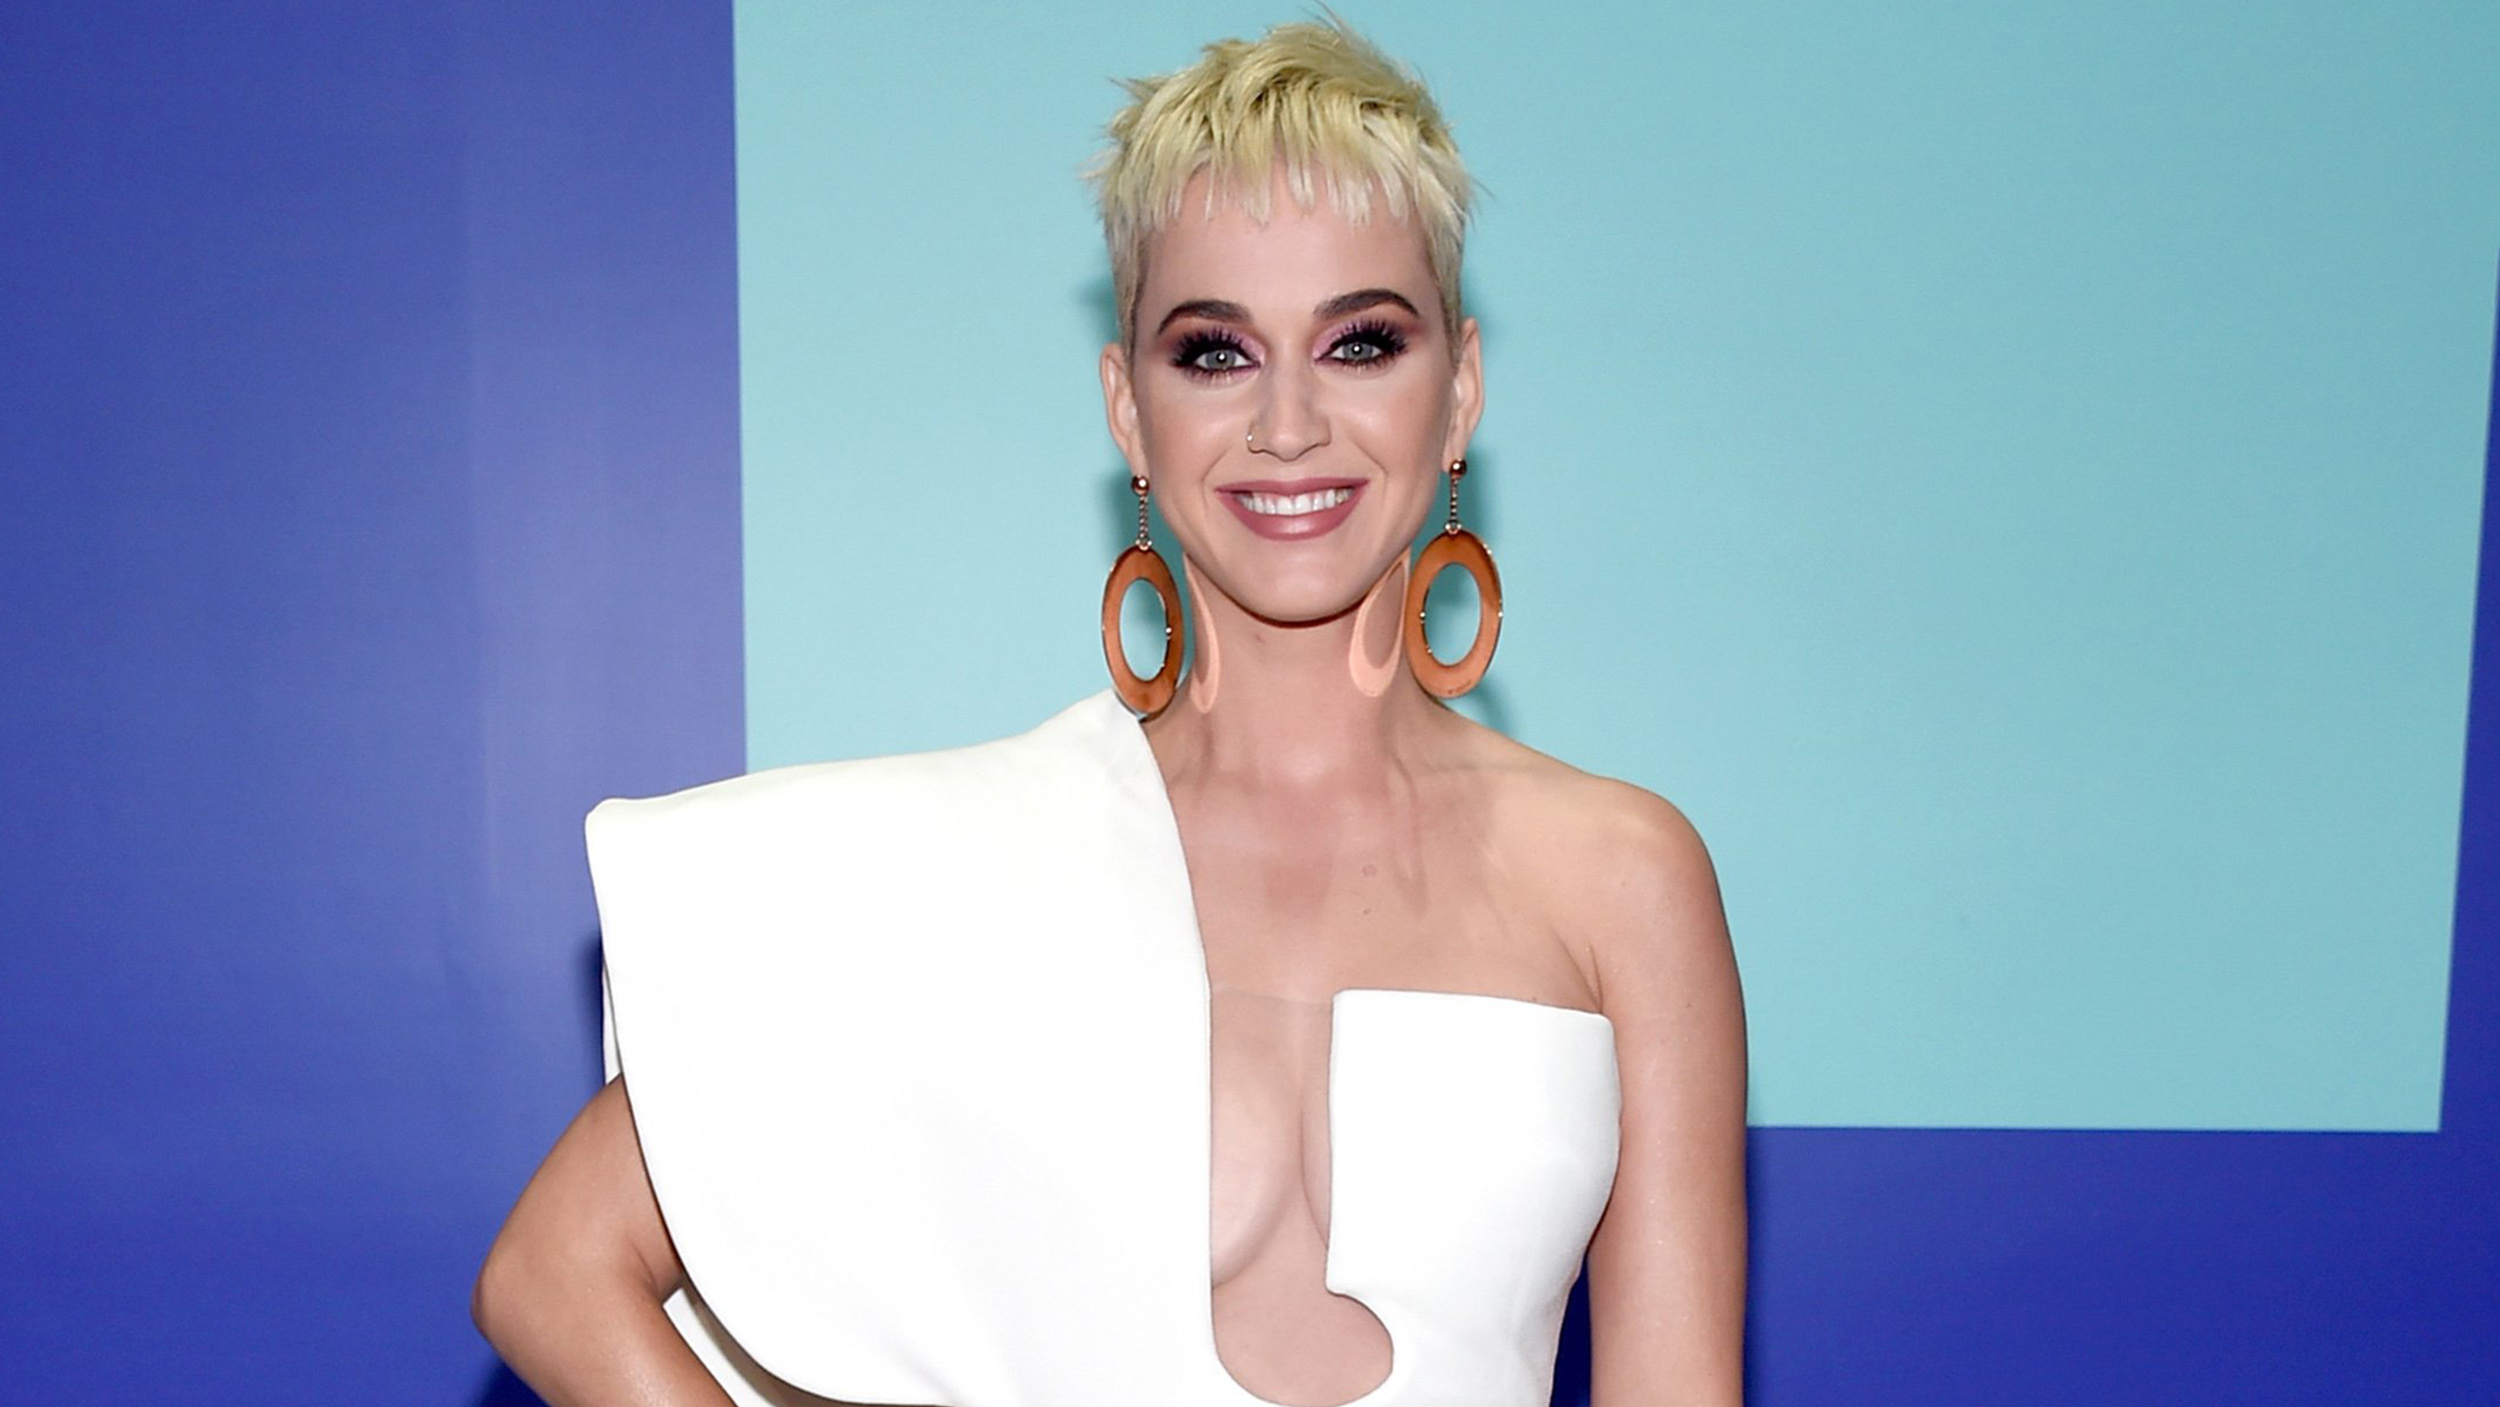 Katy Perry S Hair Is Long And Brunette In Latest American Idol